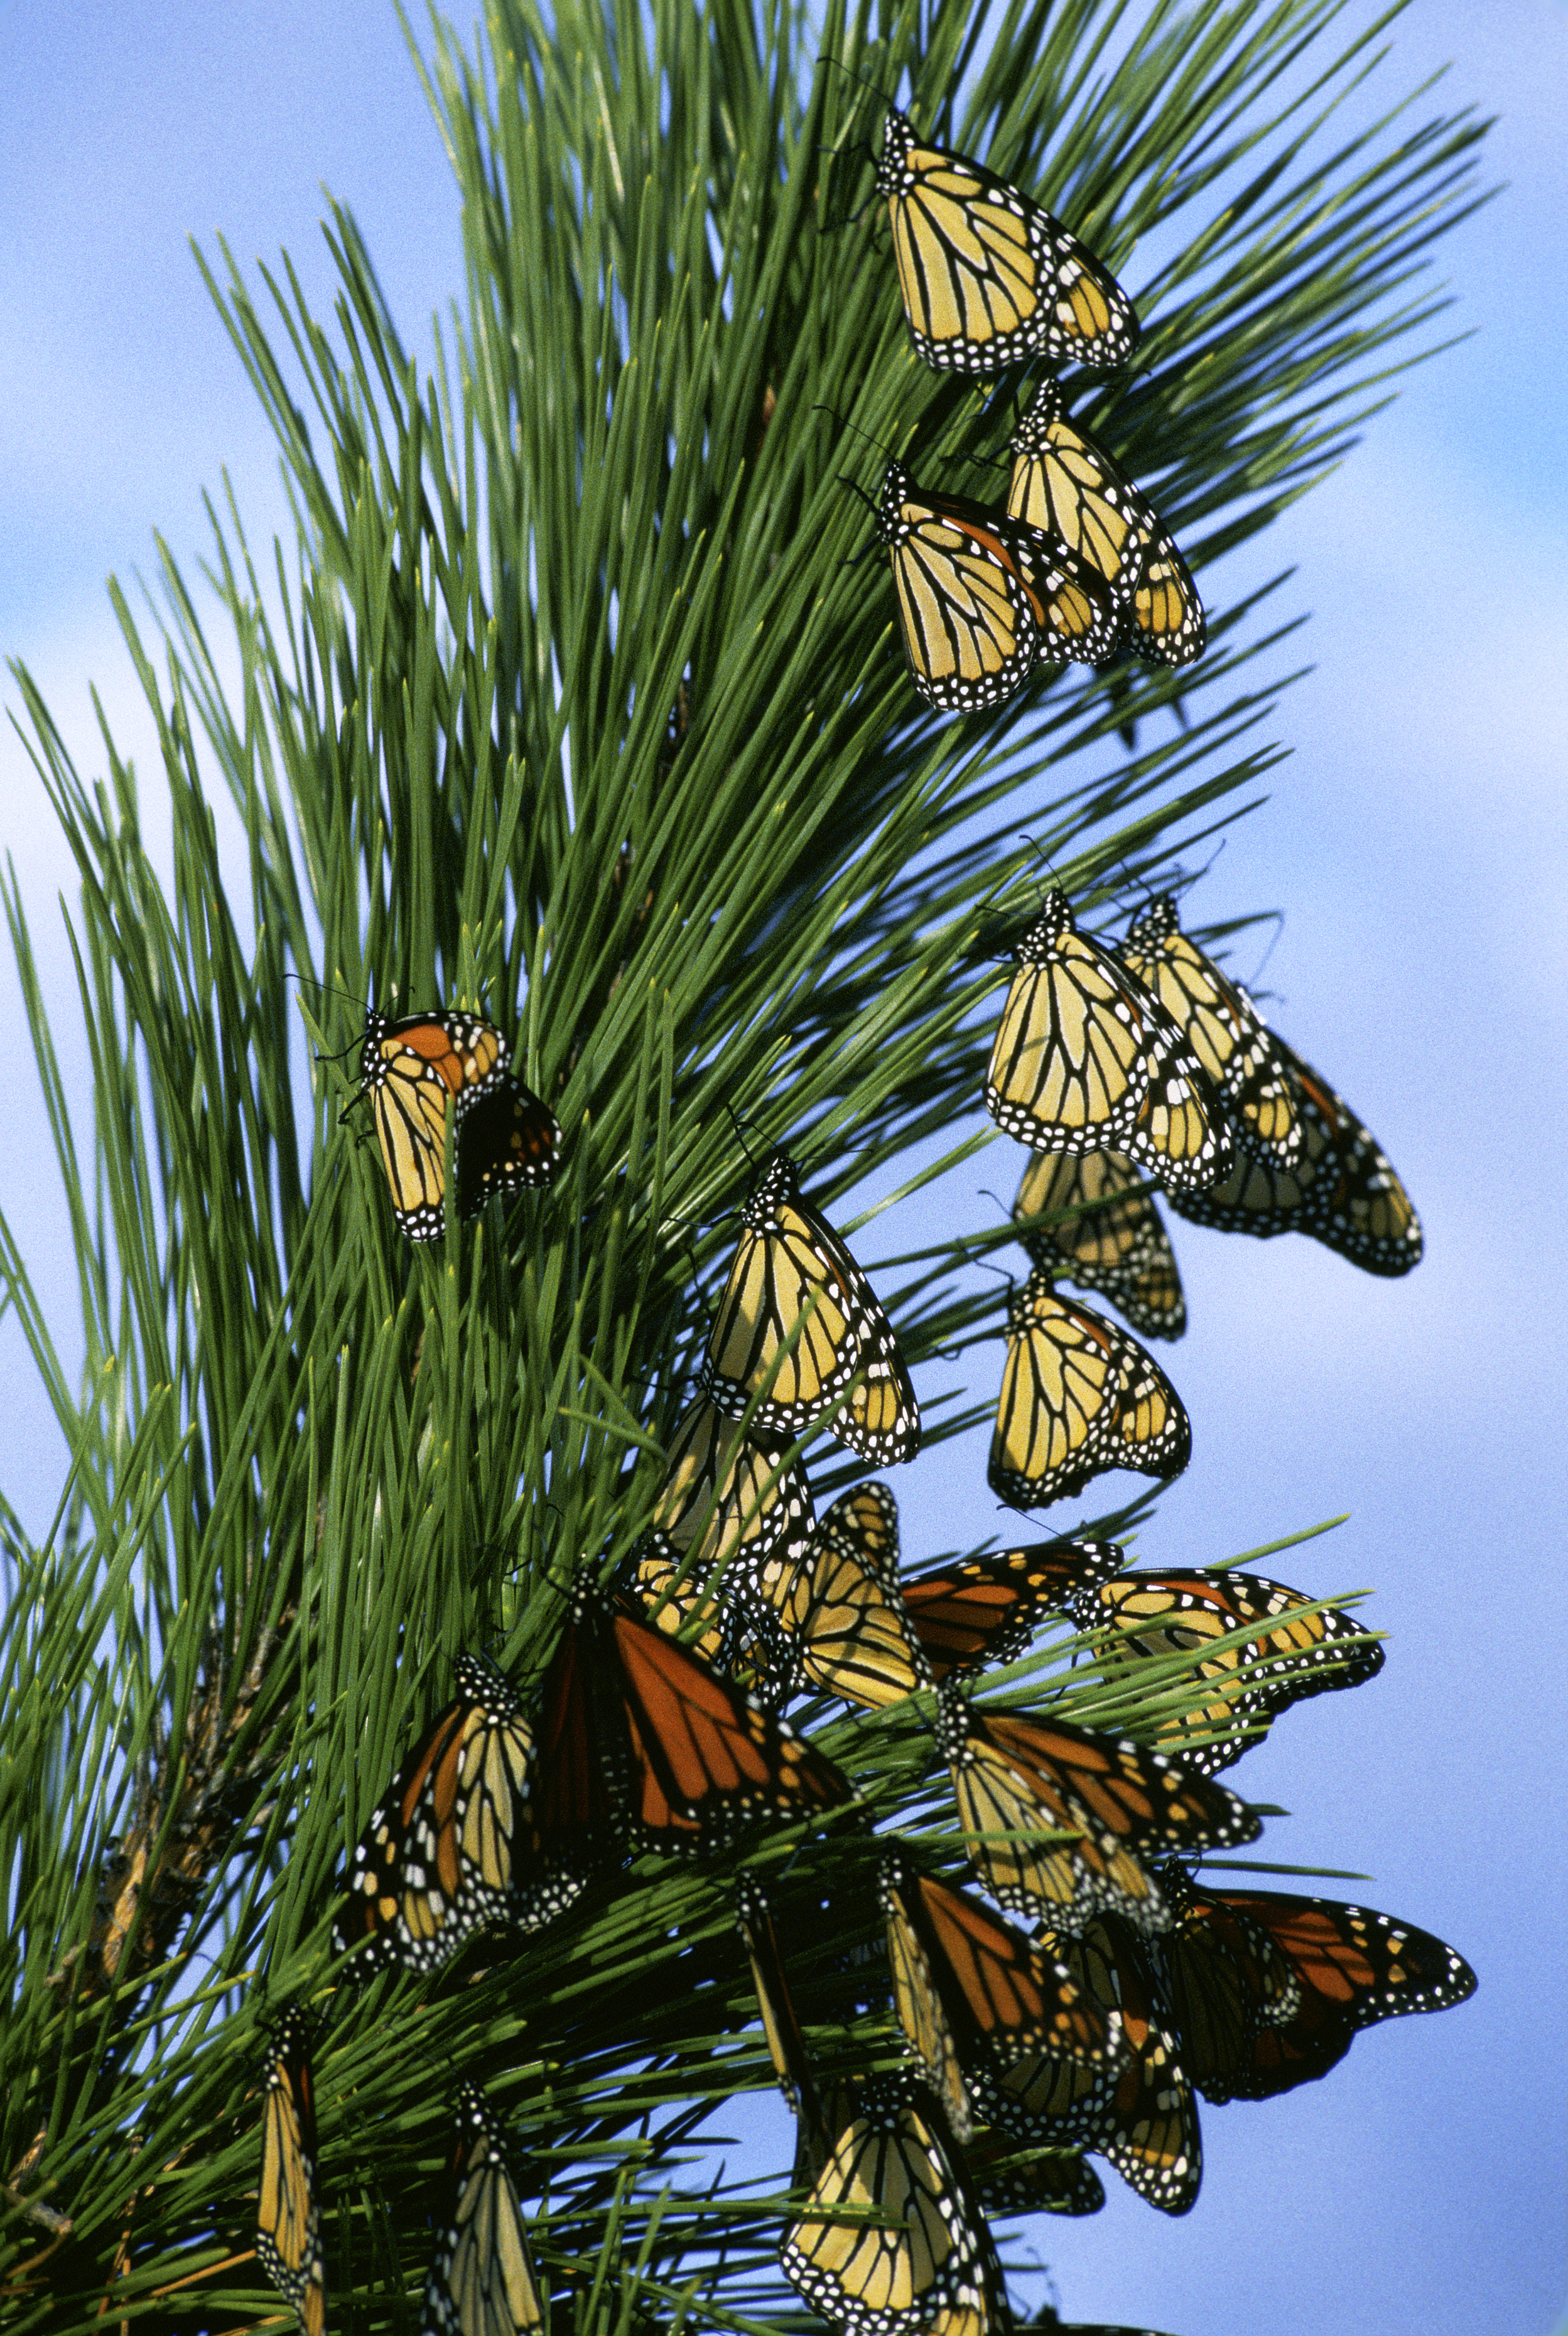 Monarch butterfly migration tree - photo#47